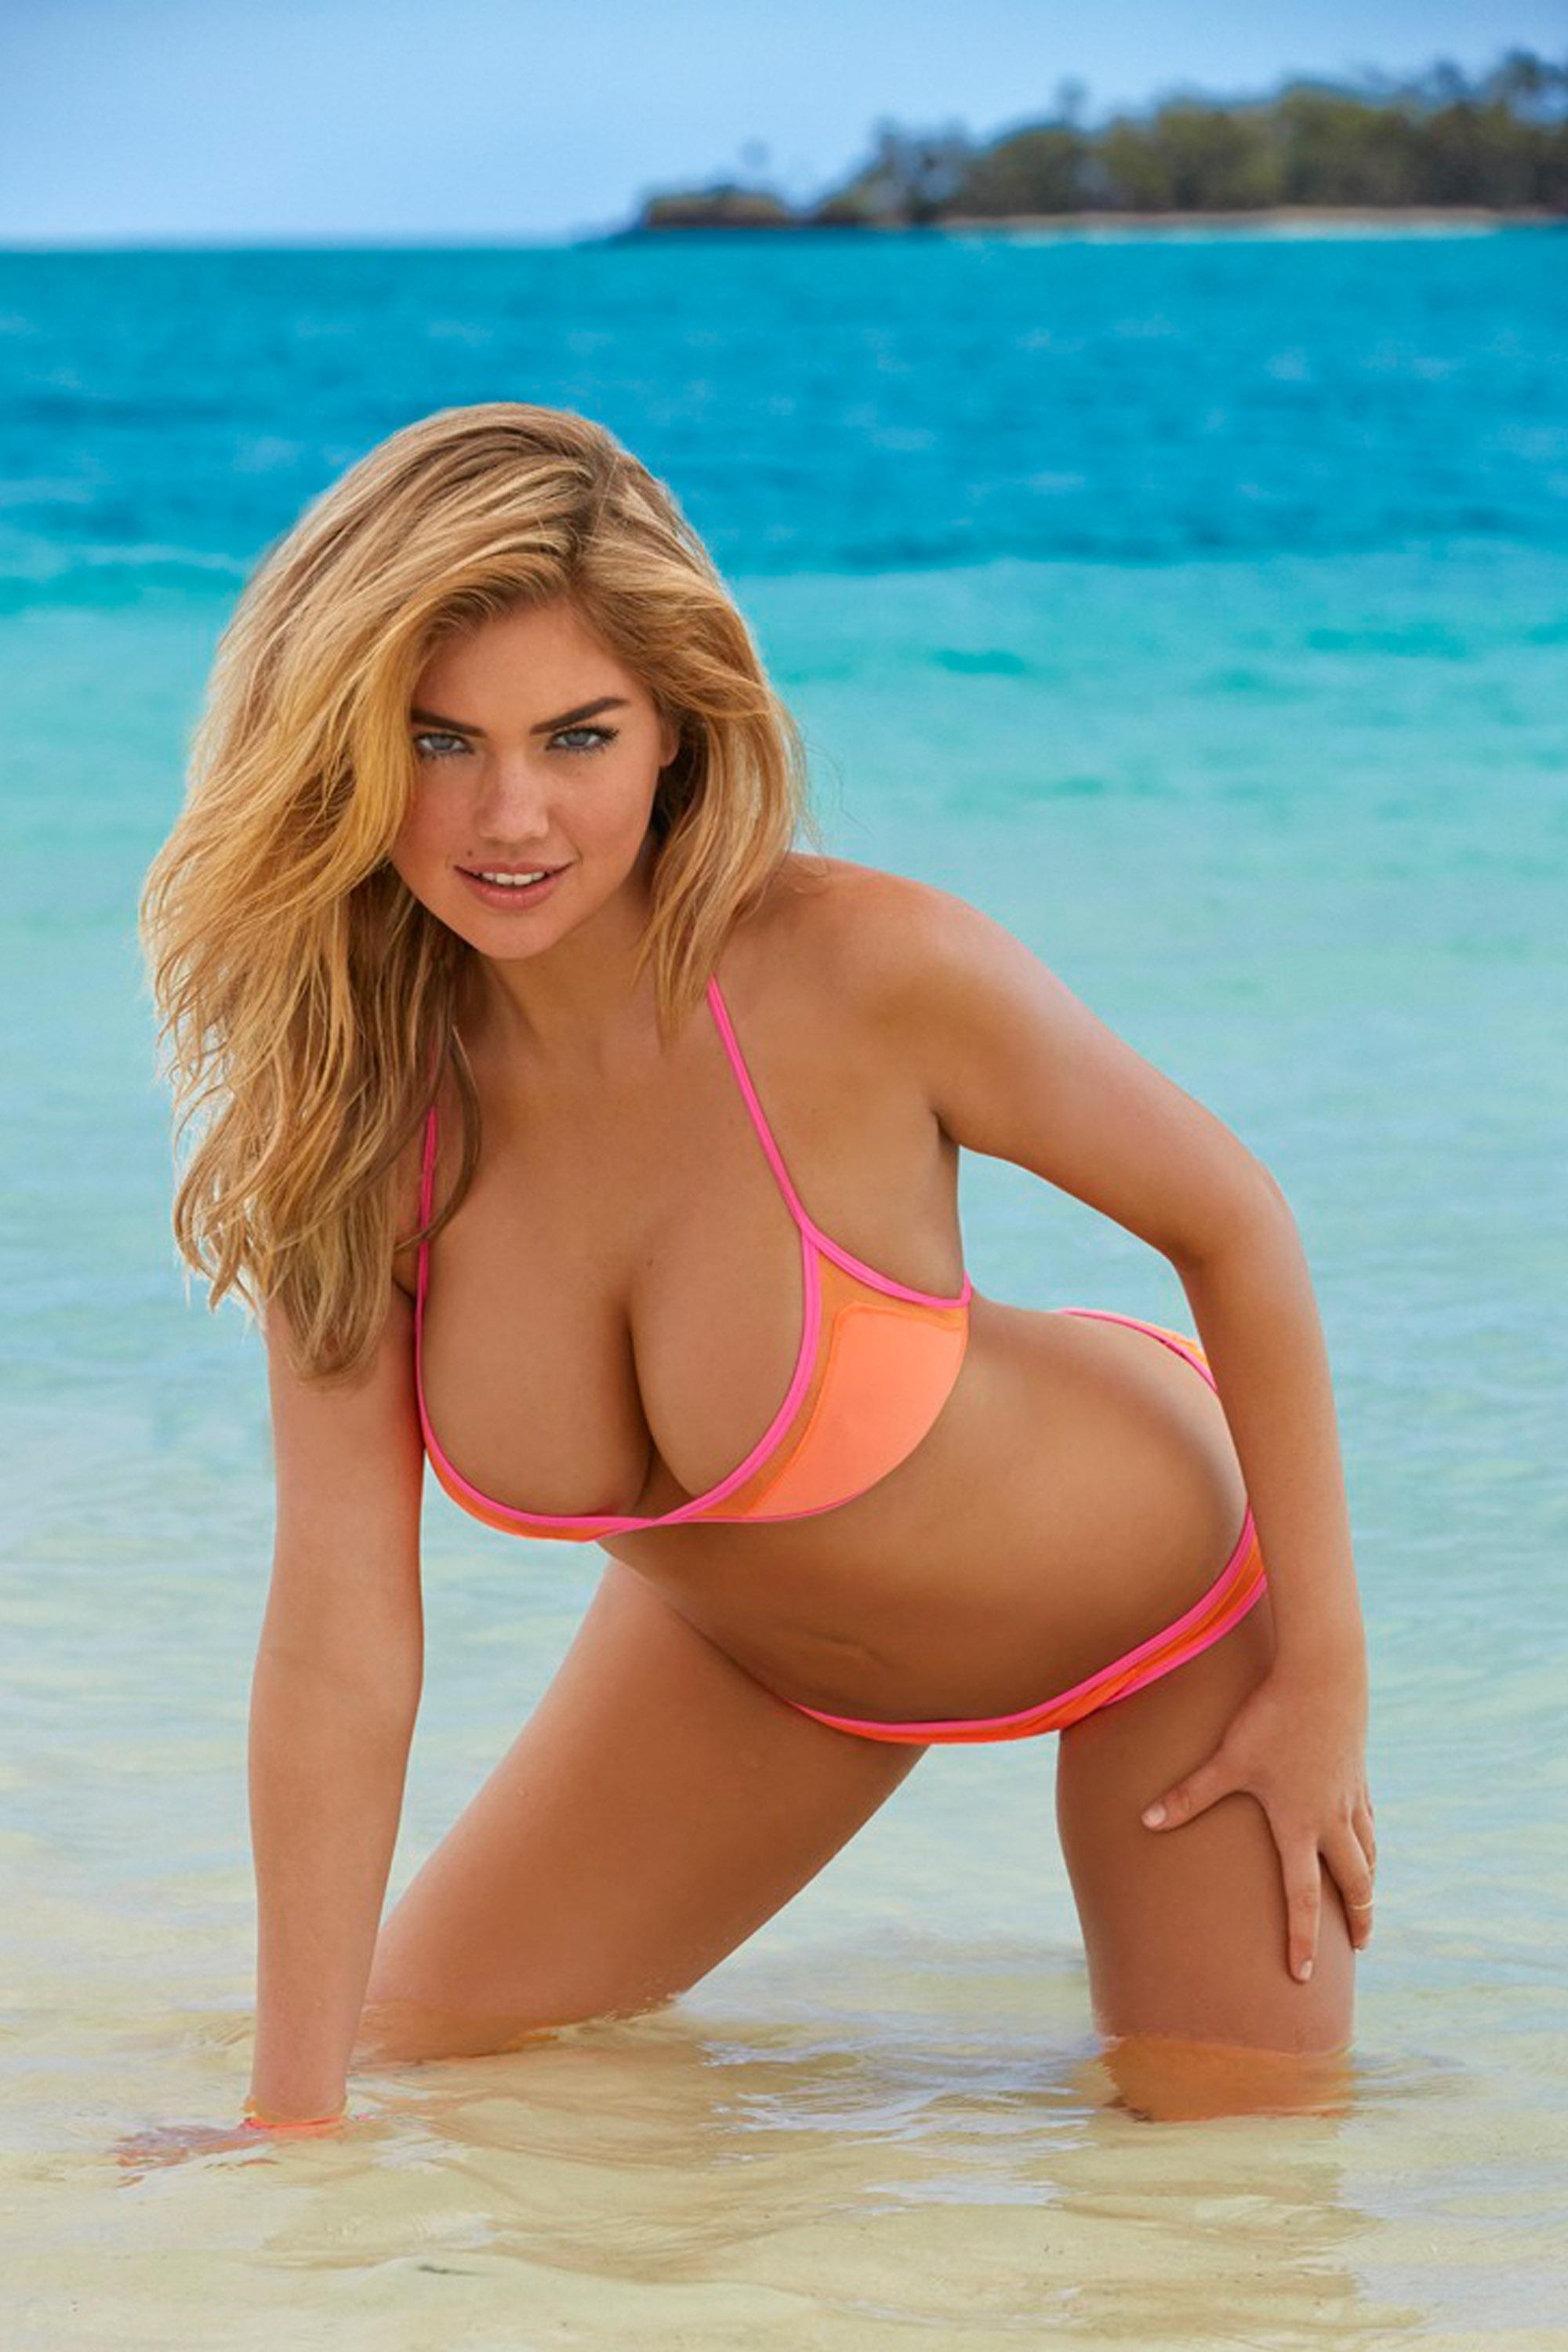 kate upton zero gravitykate upton instagram, kate upton 2016, kate upton boyfriend, kate upton шубы, kate upton wallpapers, kate upton commercial, kate upton coub, kate upton dance, kate upton twitter, kate upton zero gravity, kate upton insta, kate upton movies, kate upton wiki, kate upton обои, kate upton kinopoisk, kate upton interview, kate upton weight loss, kate upton wikipedia, kate upton параметры, kate upton imdb